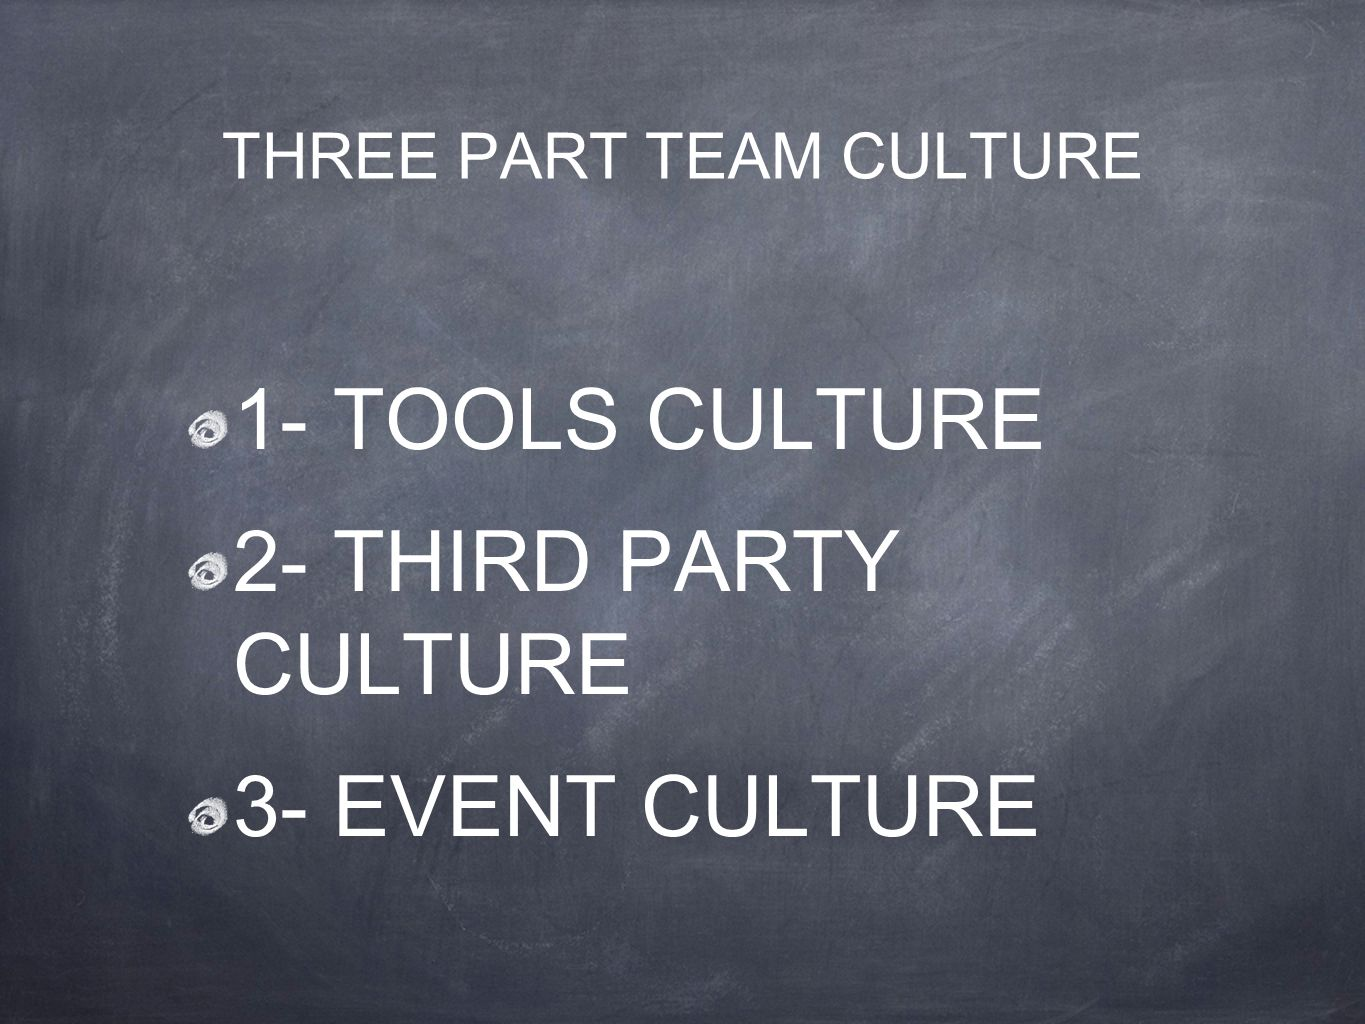 THREE PART TEAM CULTURE 1- TOOLS CULTURE 2- THIRD PARTY CULTURE 3- EVENT CULTURE